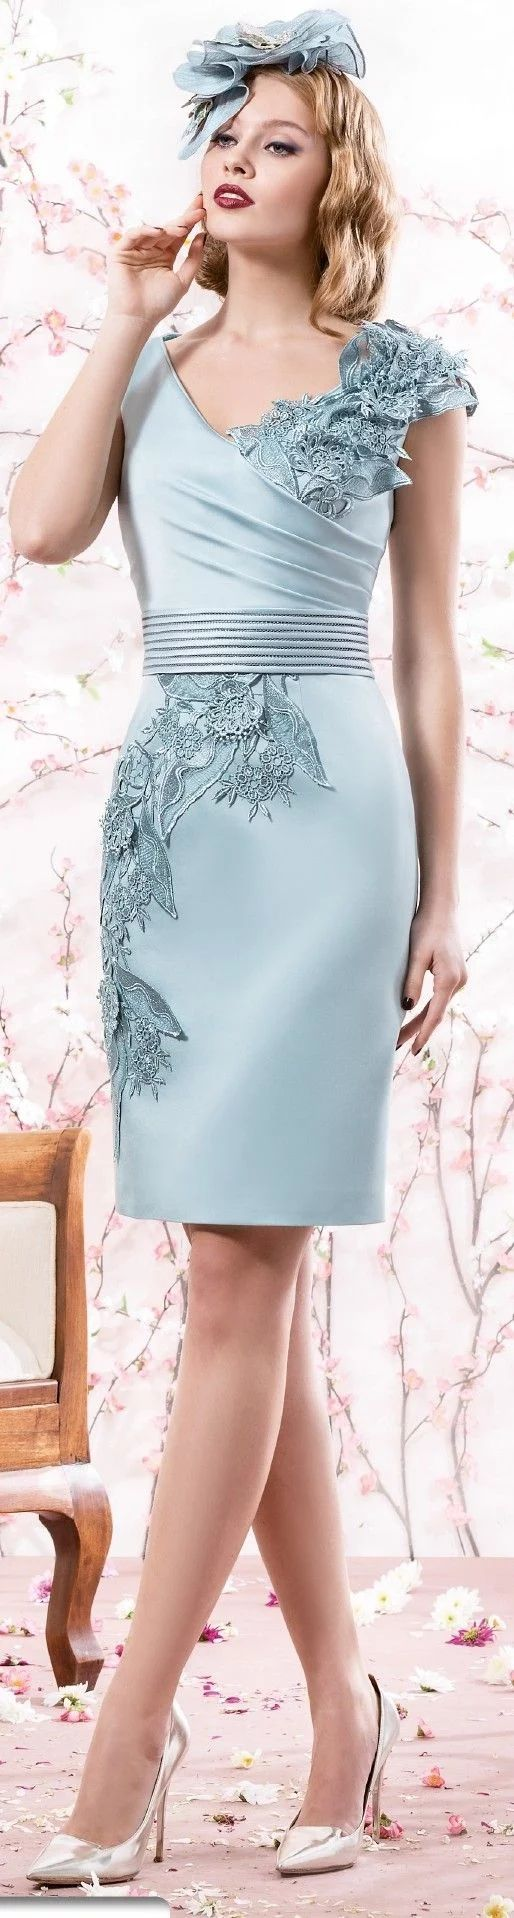 457 best elegant clothes images on Pinterest | Sweet dress, Block ...